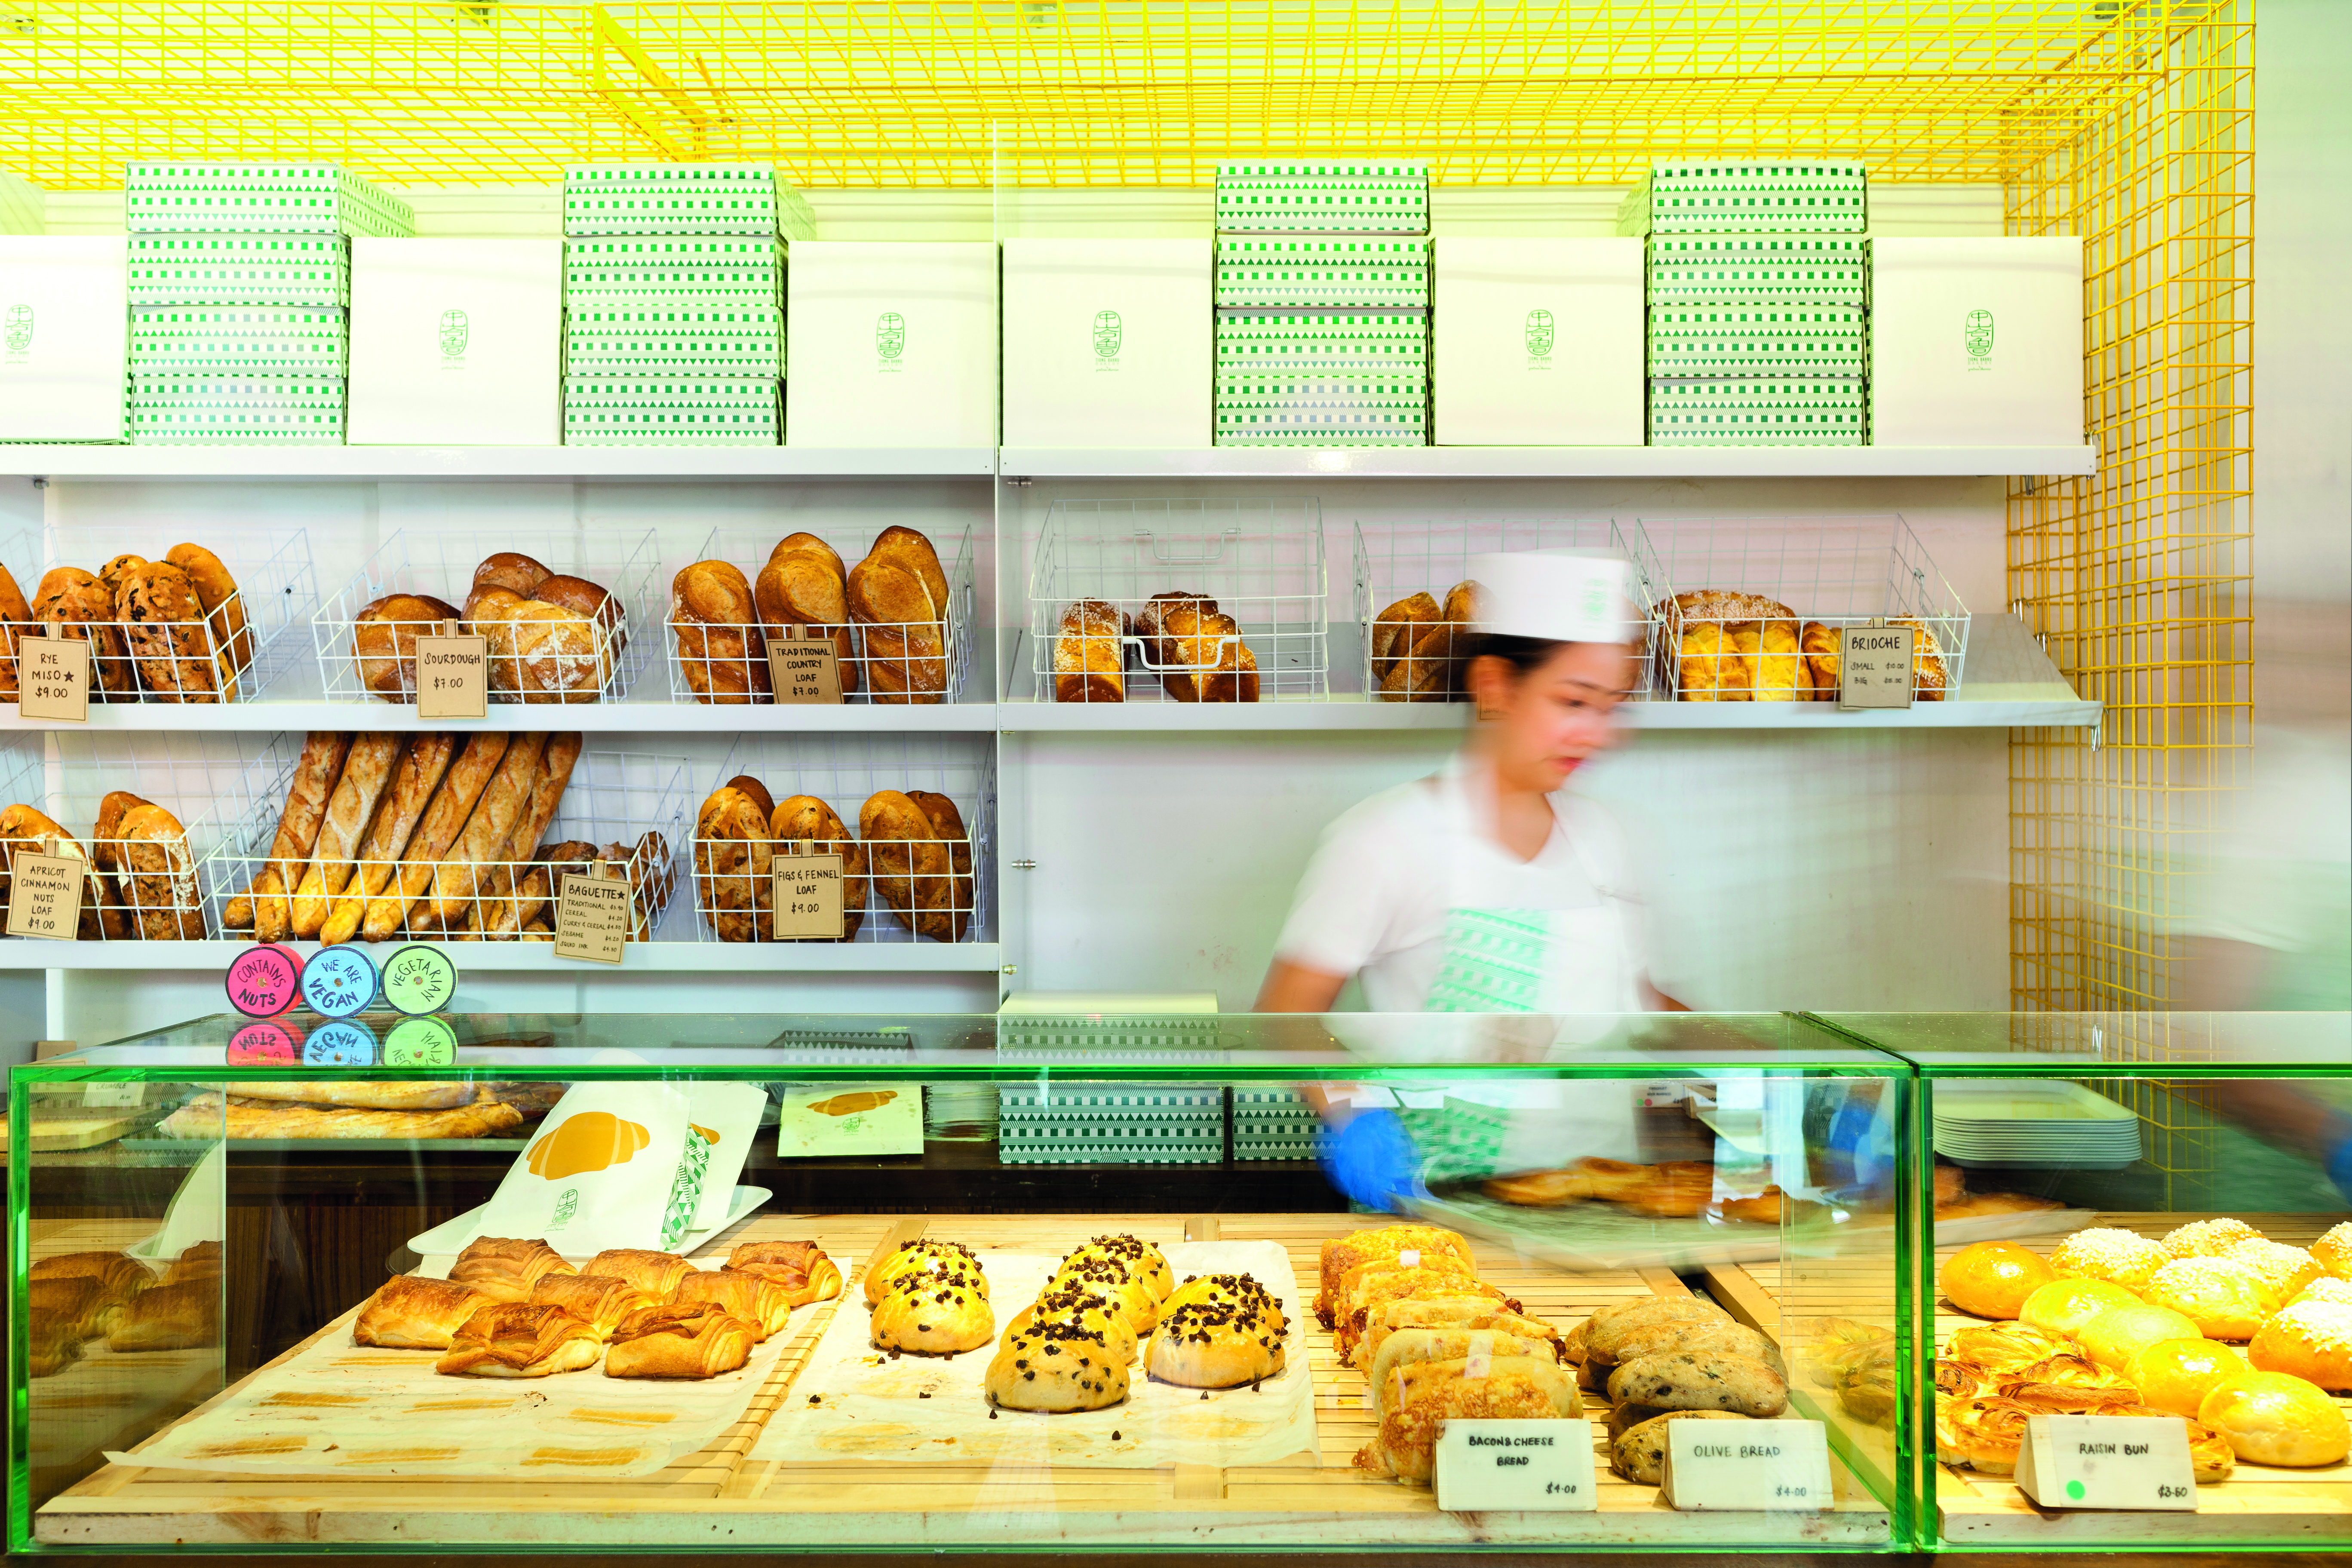 A peek into the Tiong Bahru Bakery.